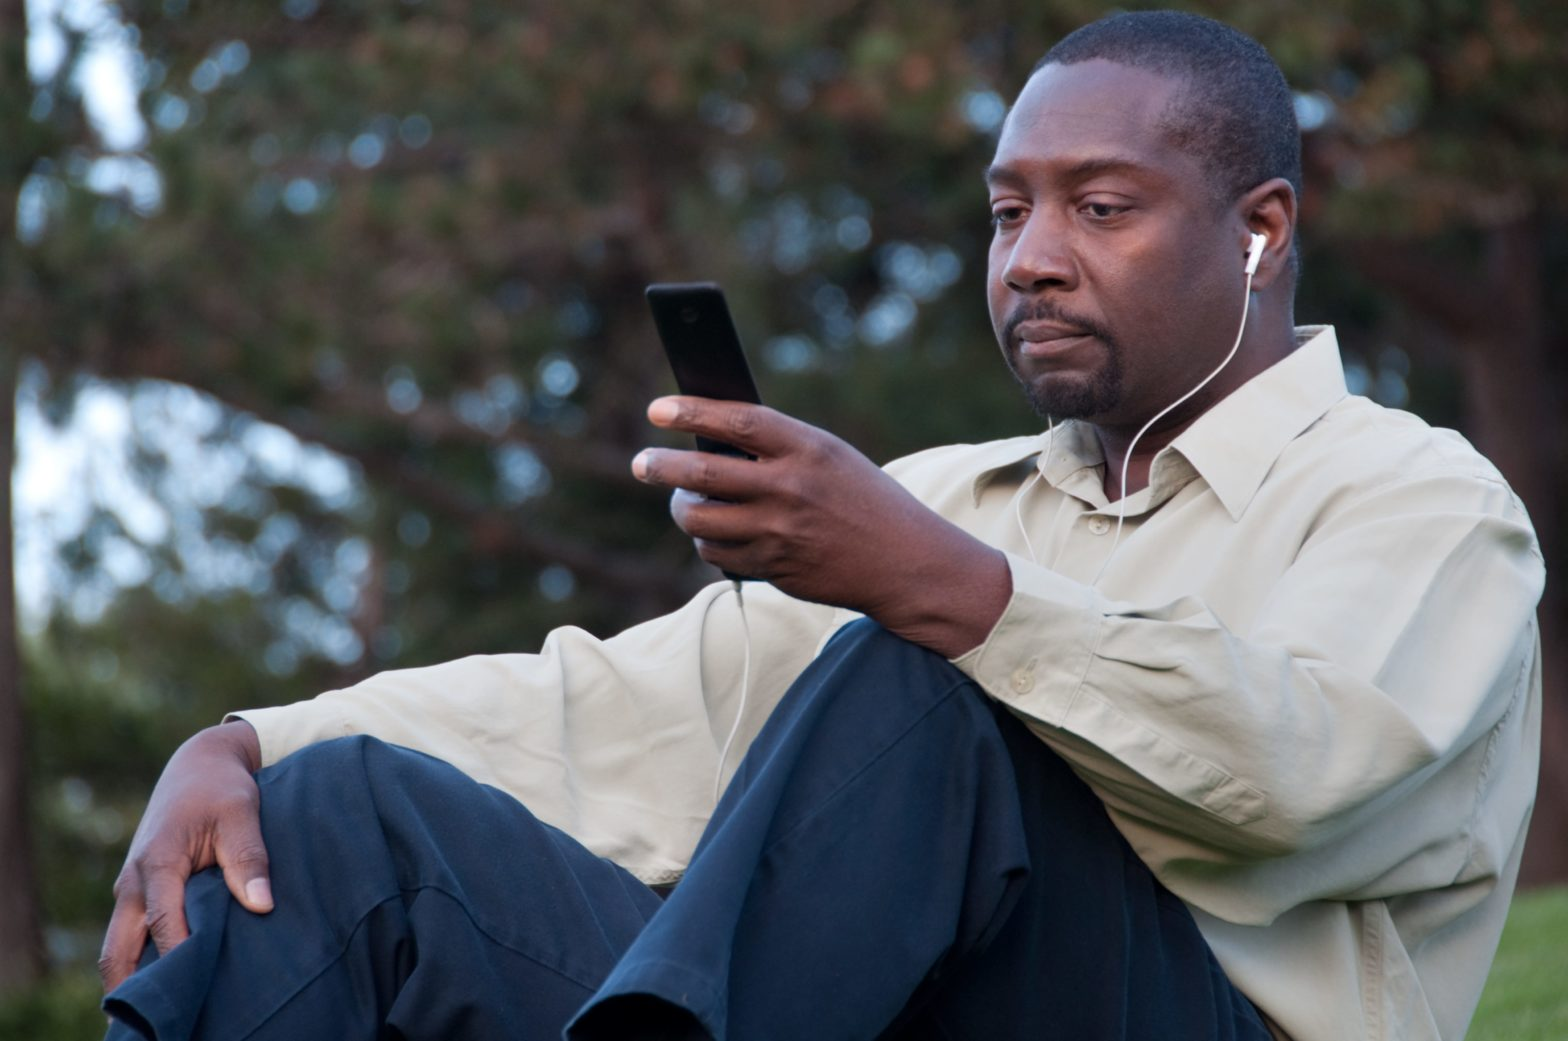 Man sitting and using his phone with earbuds